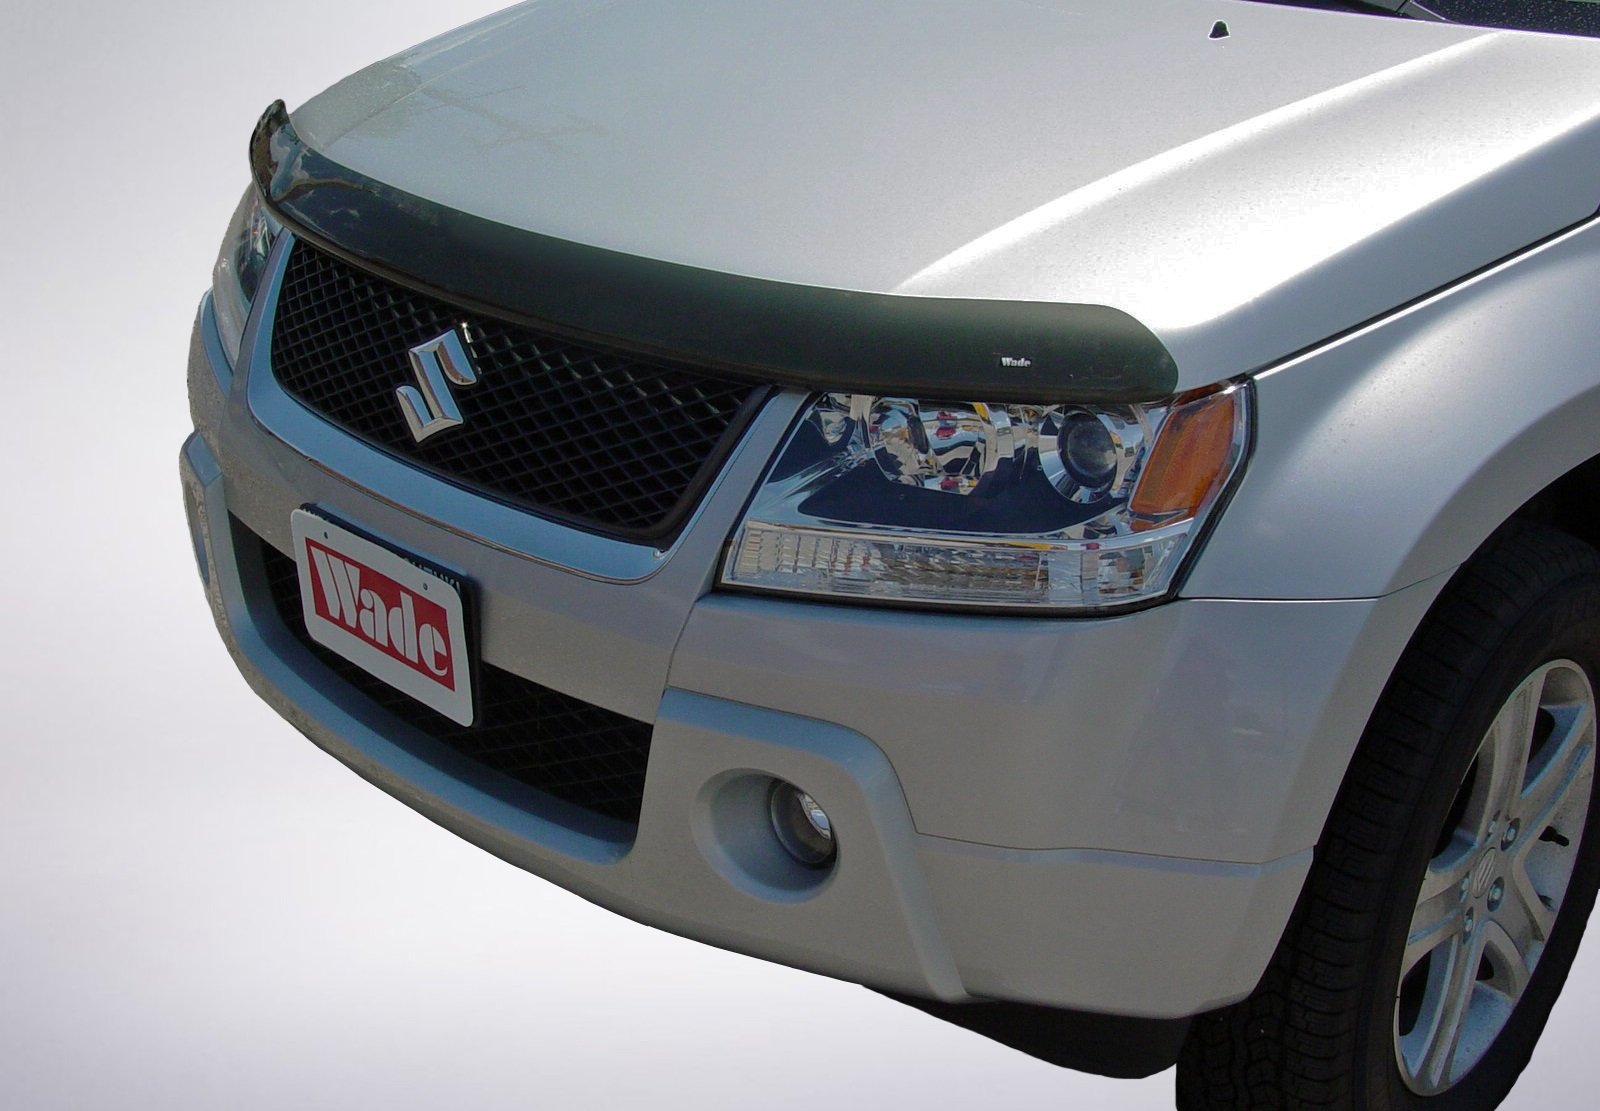 2011 Suzuki Grand Vitara Bug Shield